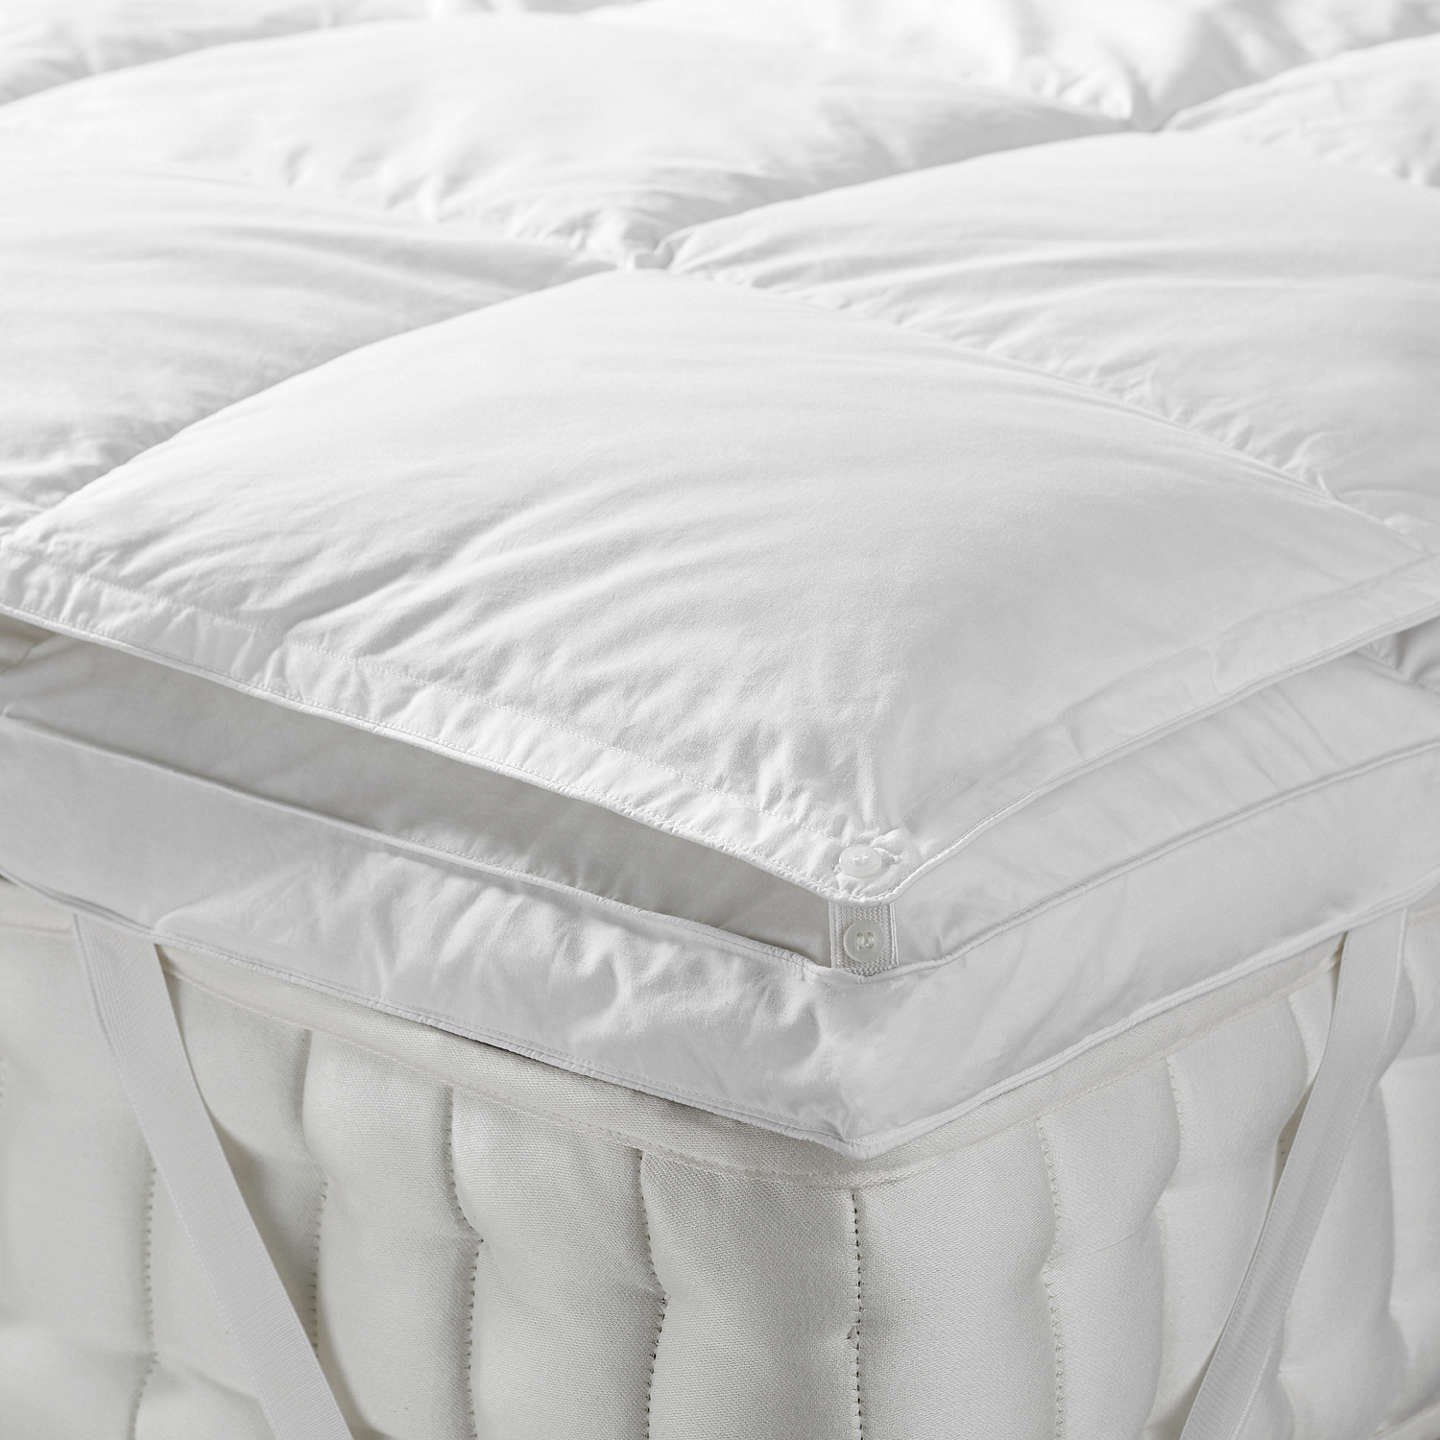 mattress pillow of memory top serta king and quot walmart topper queen size foam cover beautiful